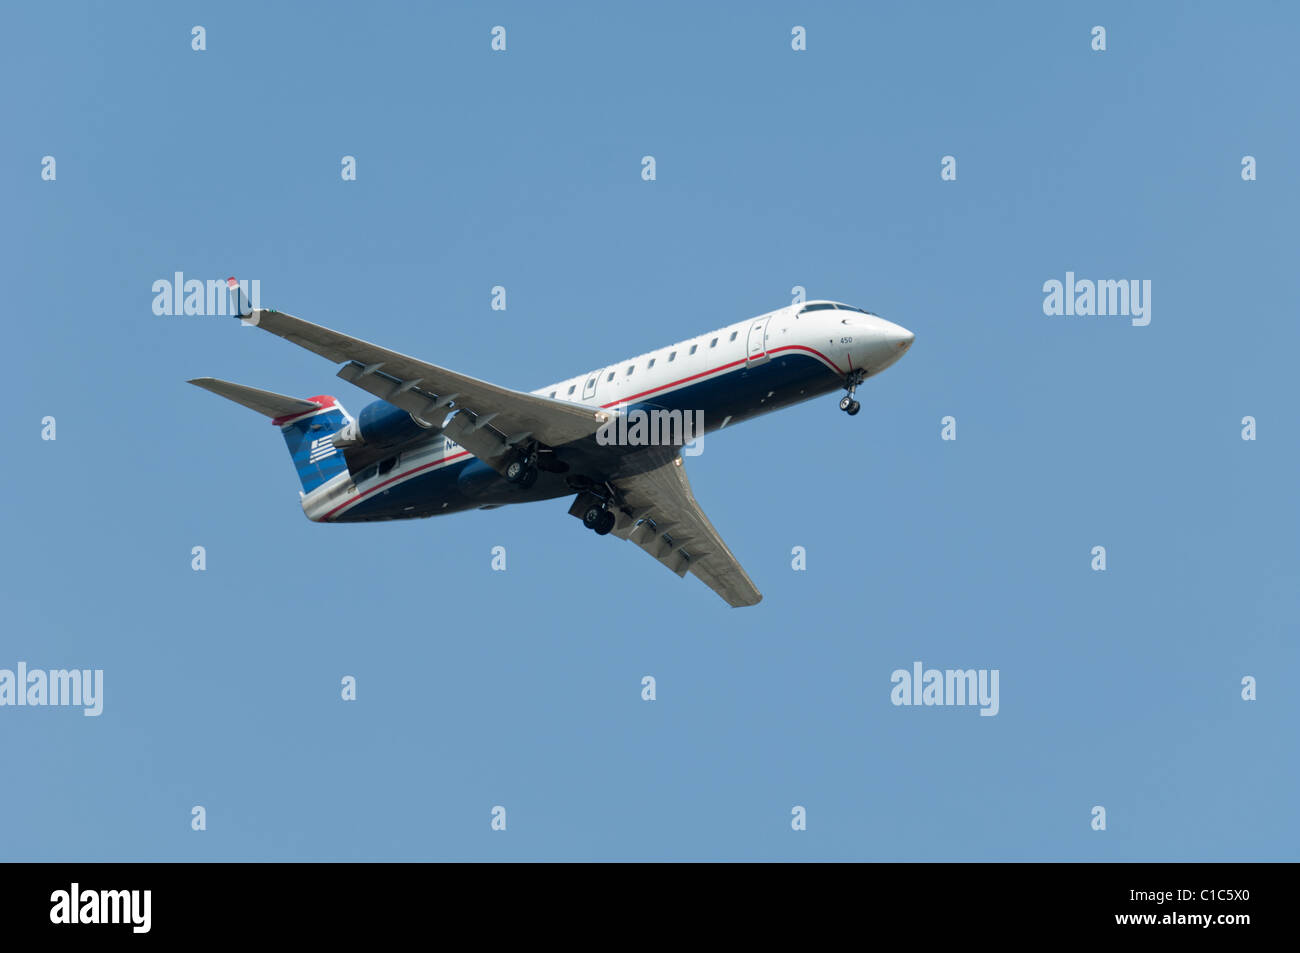 Canadair CL600 regional jet with U.S. Airways livery colours on final approach. - Stock Image